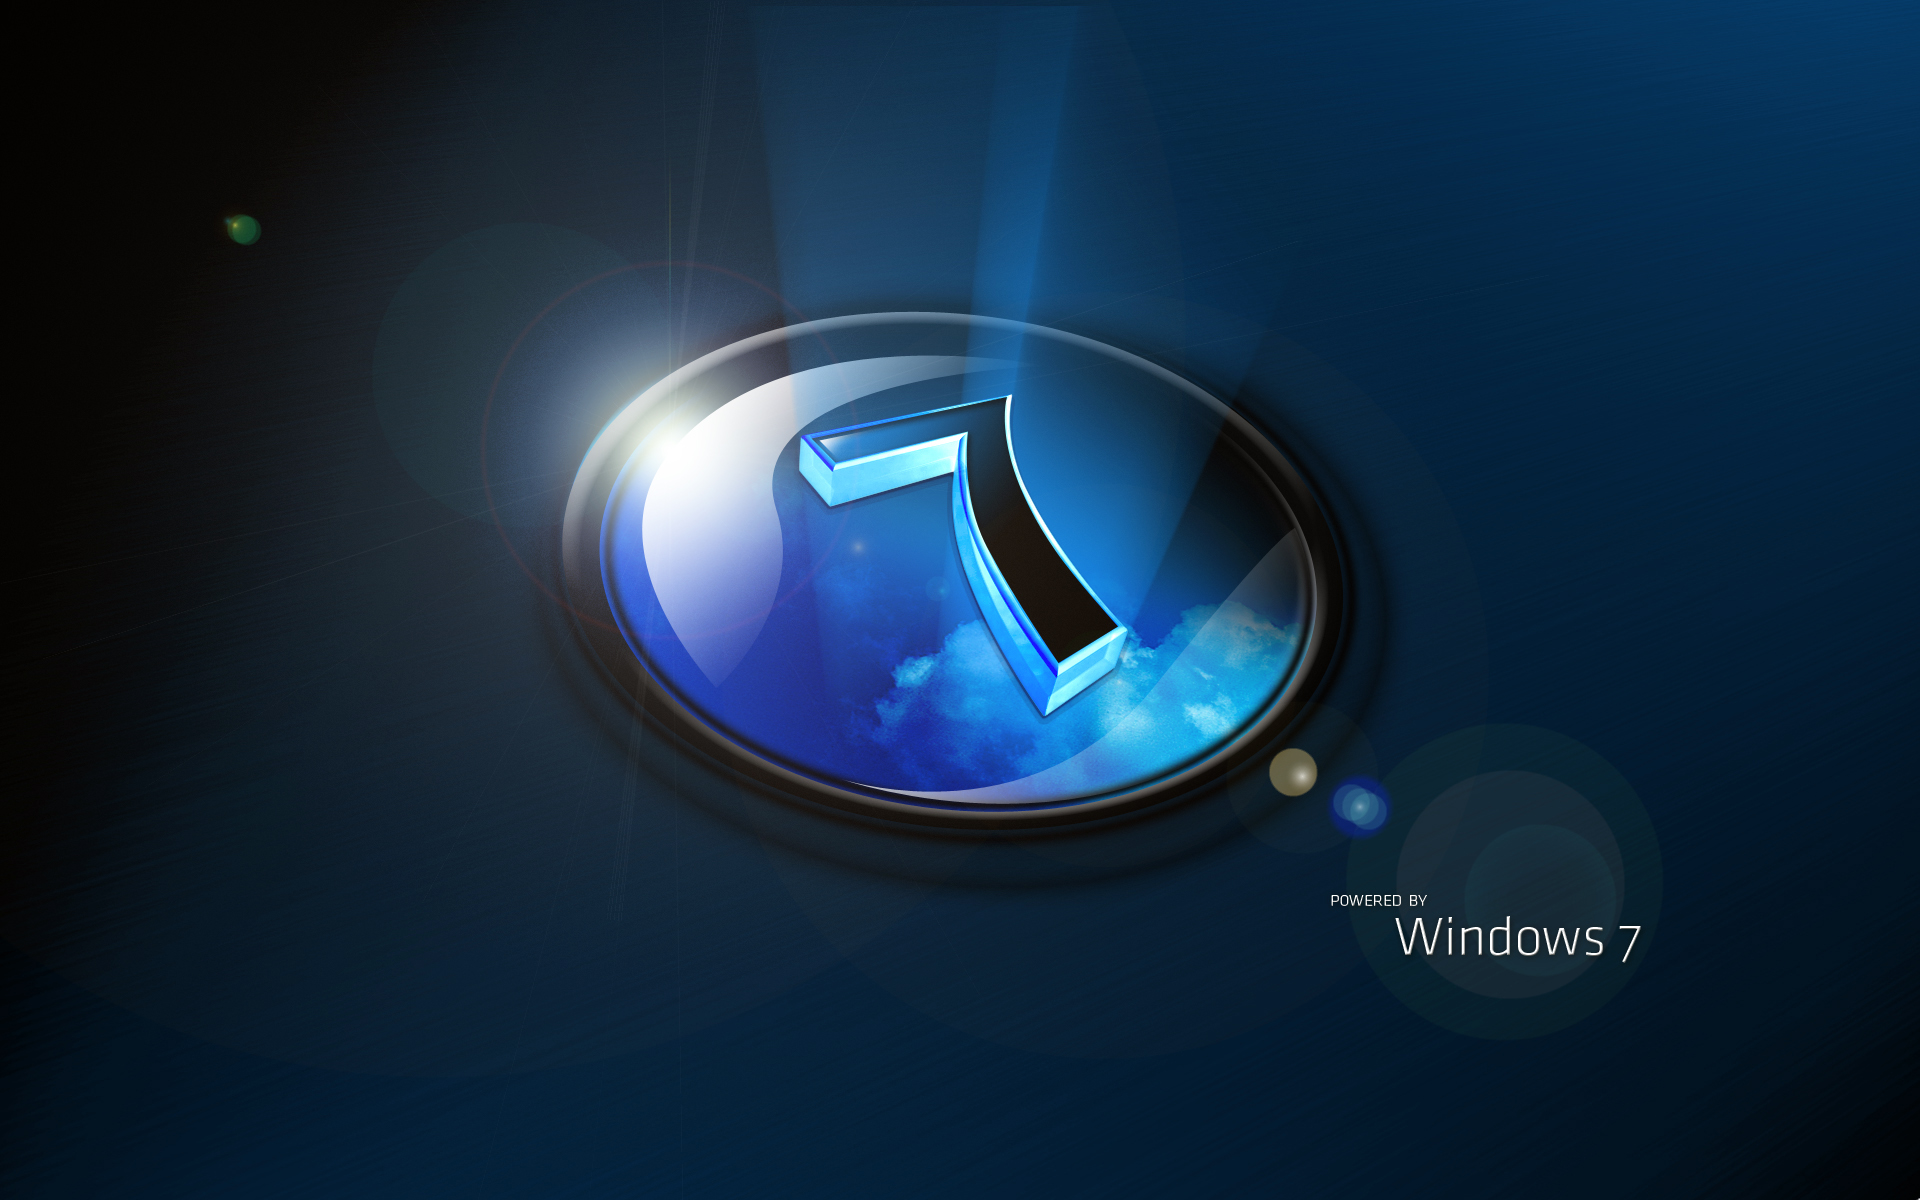 Hintergrund Hintergrundbilder Wallpaper Windows 7 Windows FAQ 1920x1200